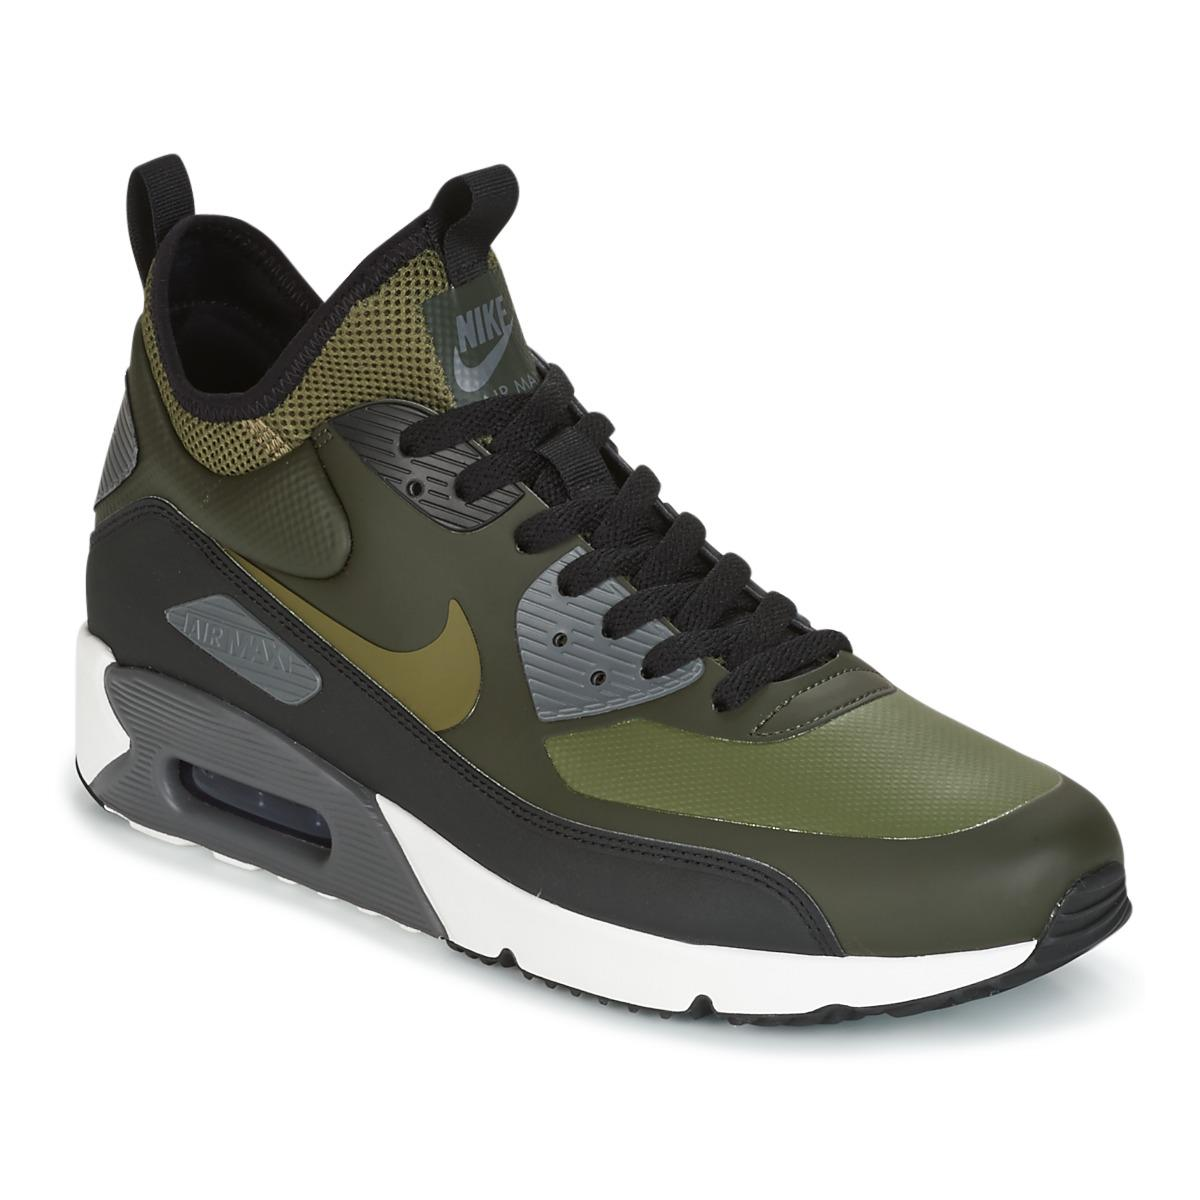 buy popular 5631e 2a3d7 Nike Air Max 90 Ultra Mid Winter Men's Shoes (high-top Trainers) In ...